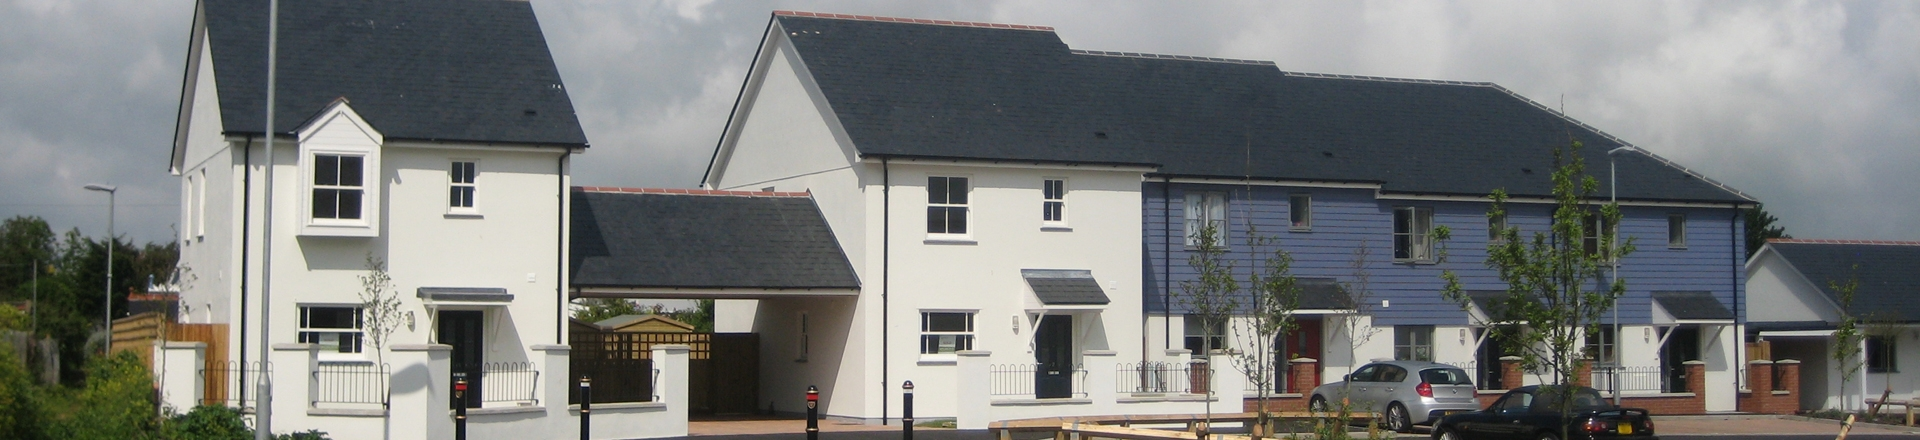 Homes at Jubilee Close